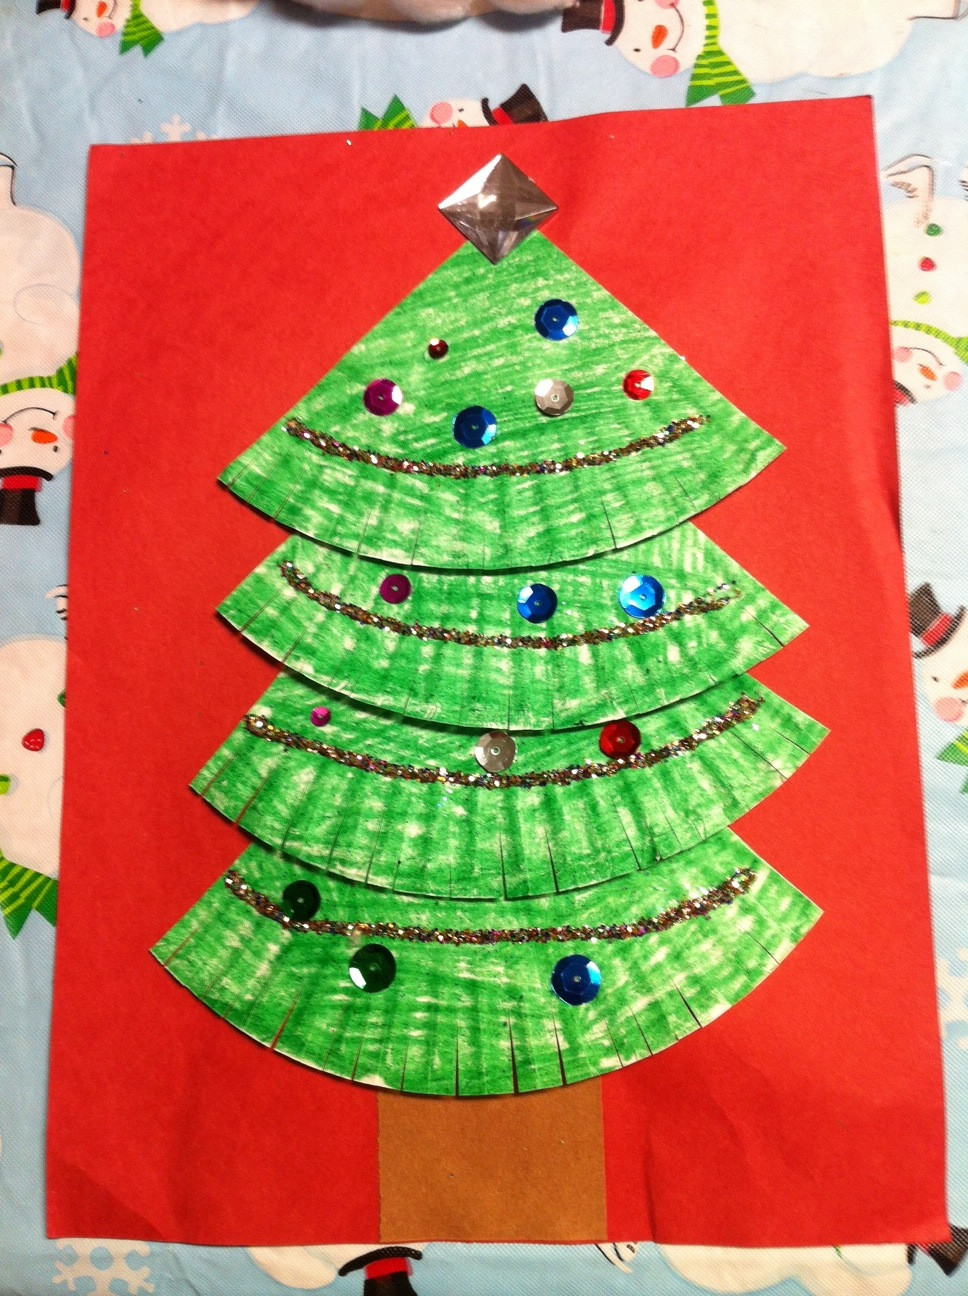 Christmas Arts And Craft Ideas For Toddlers  Kindergarten Kids At Play Fun Winter & Christmas Craftivities